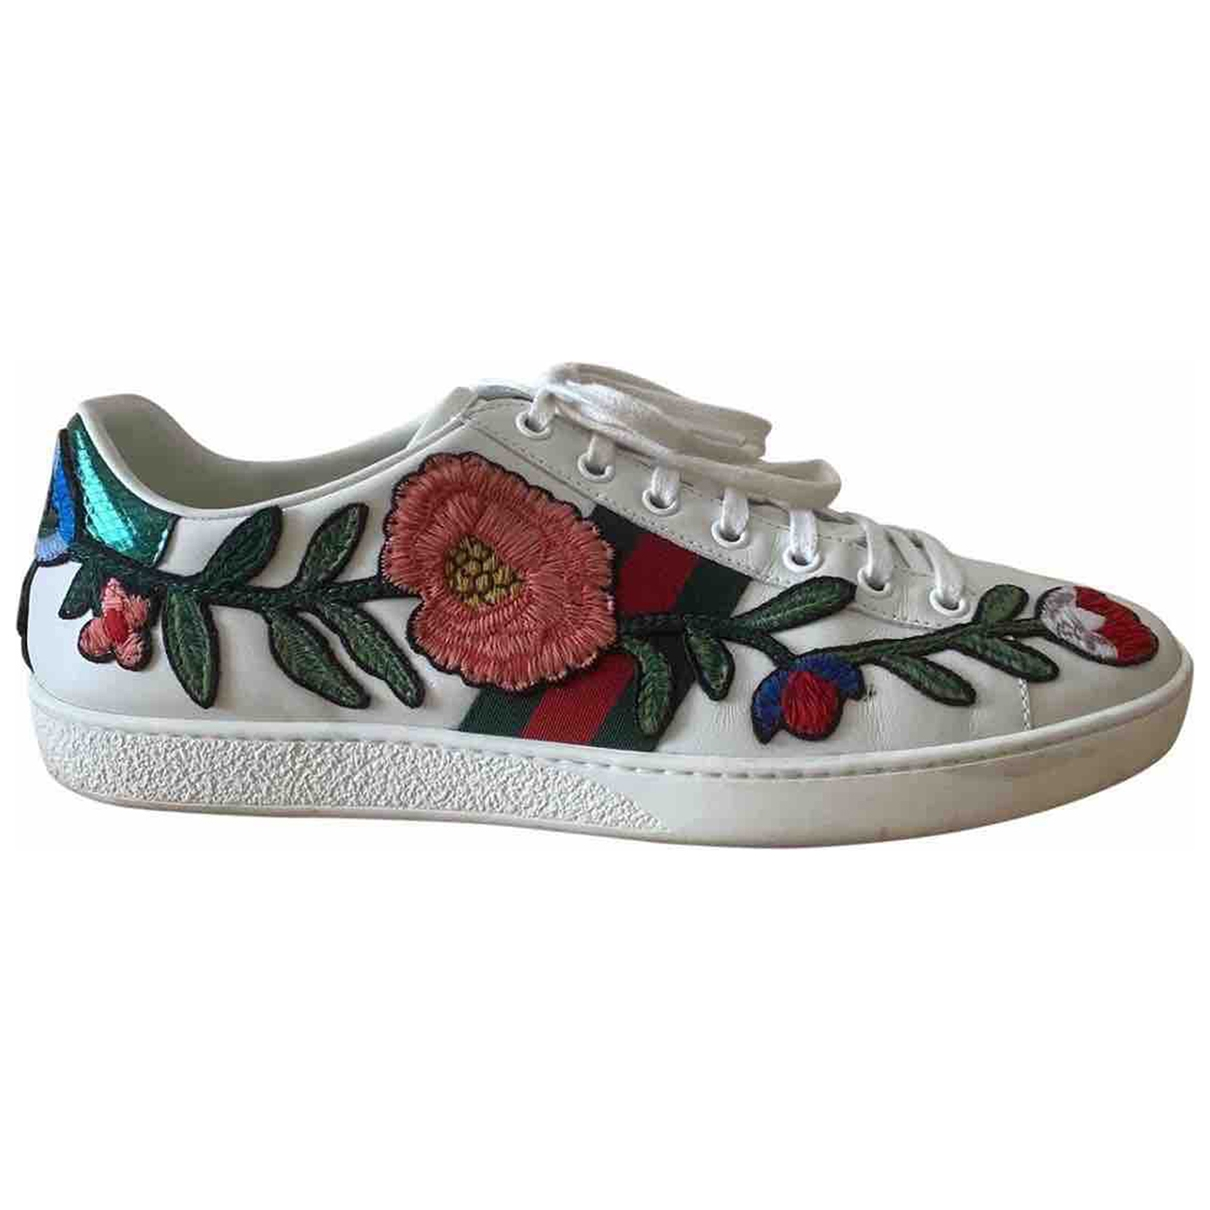 Gucci Ace White Leather Trainers for Women 36 EU